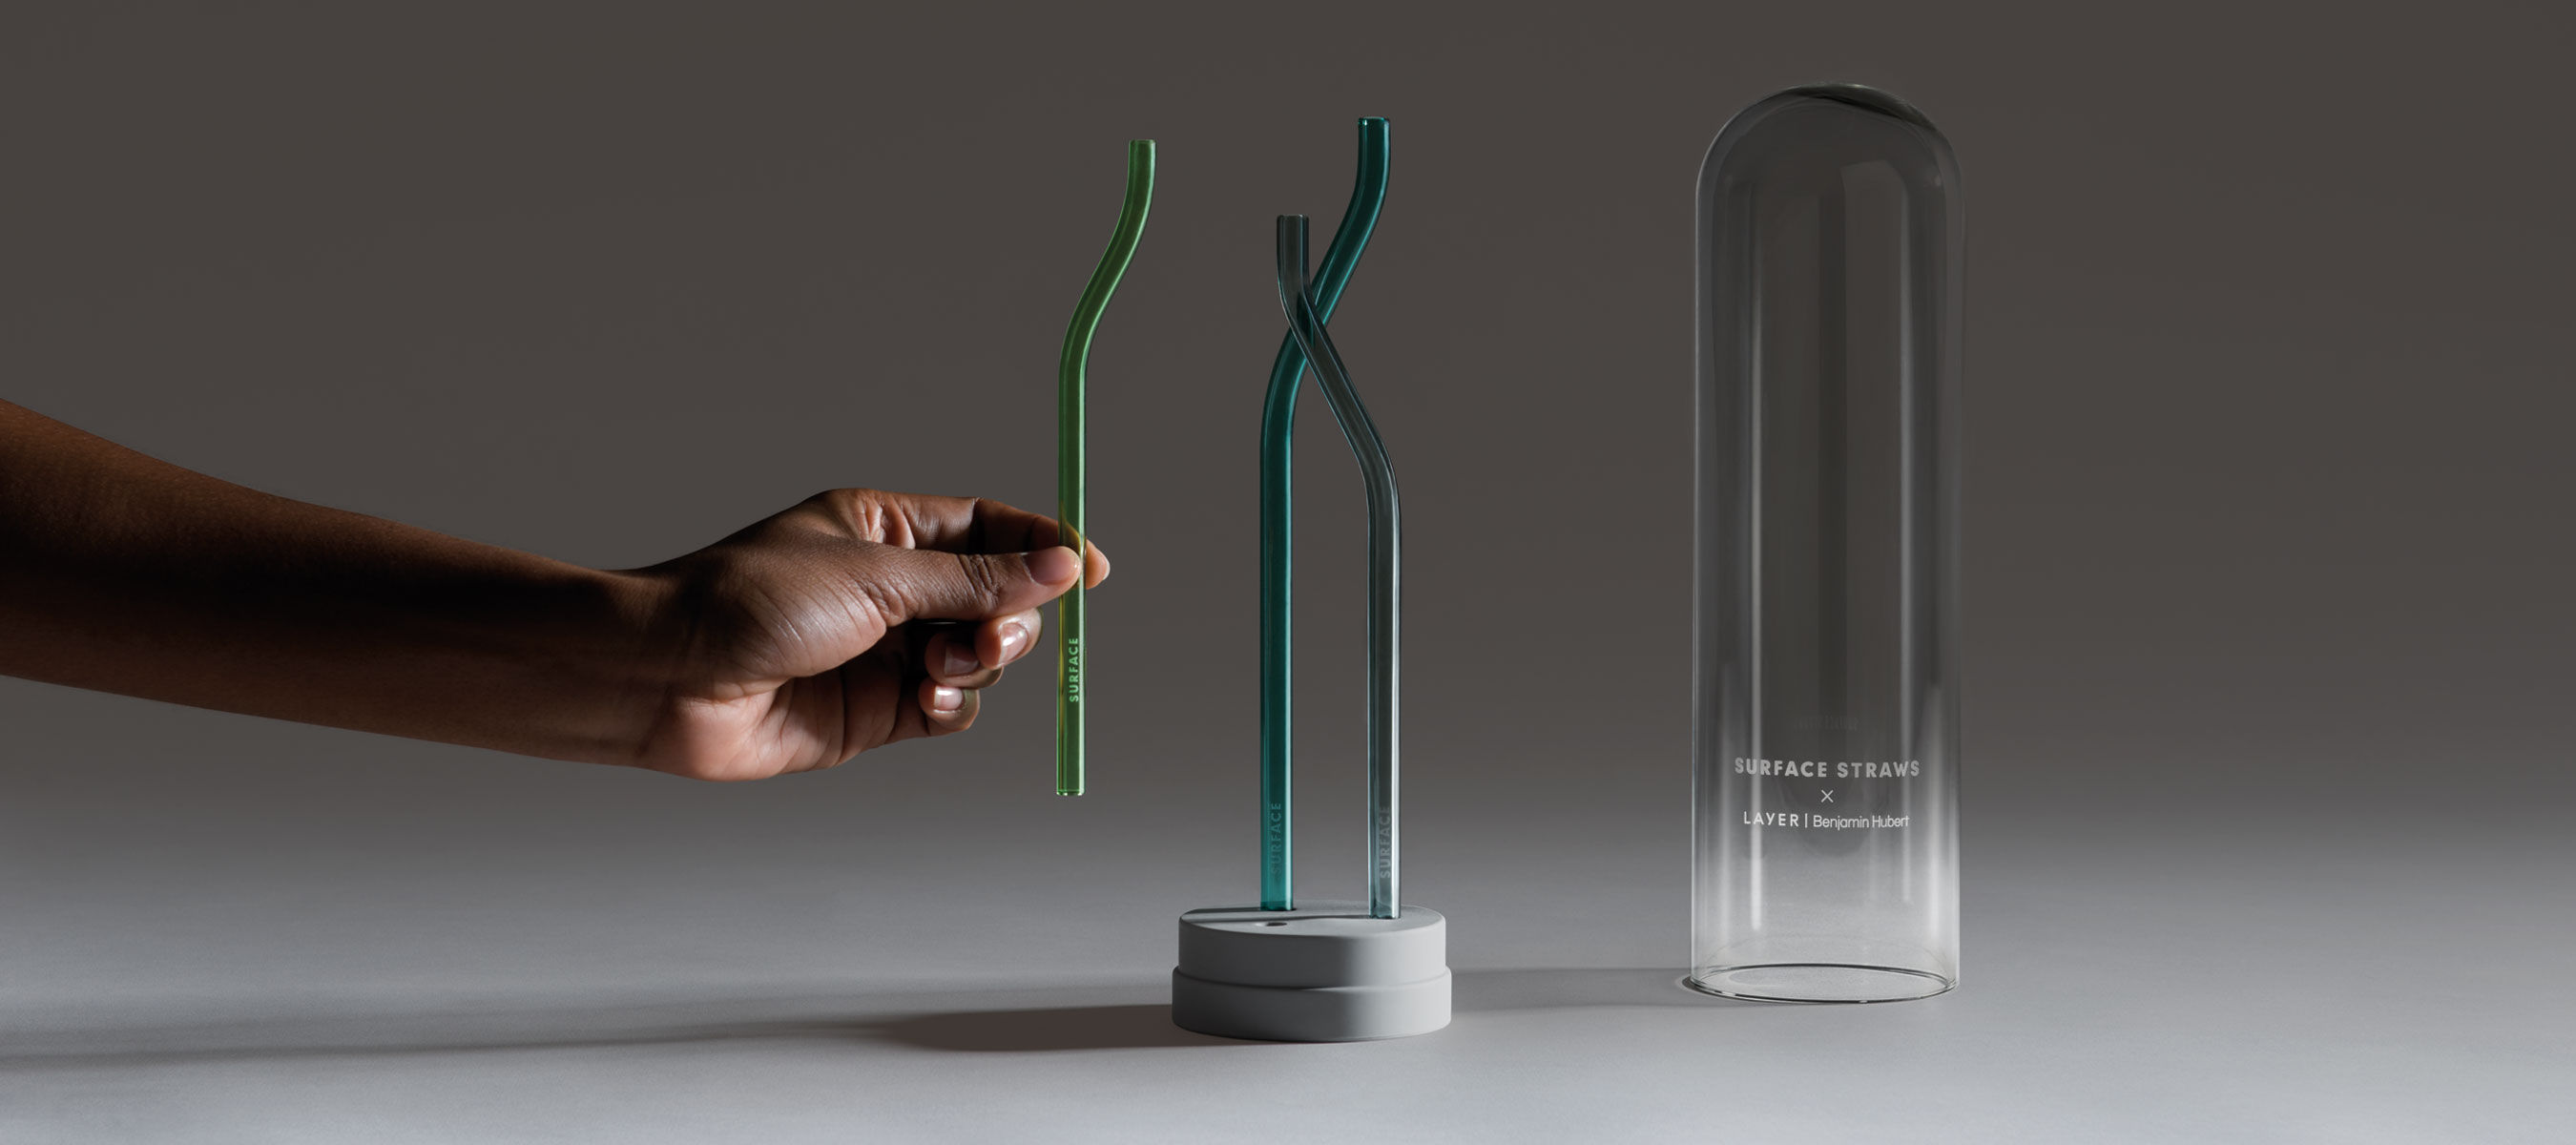 Surface Straws launches